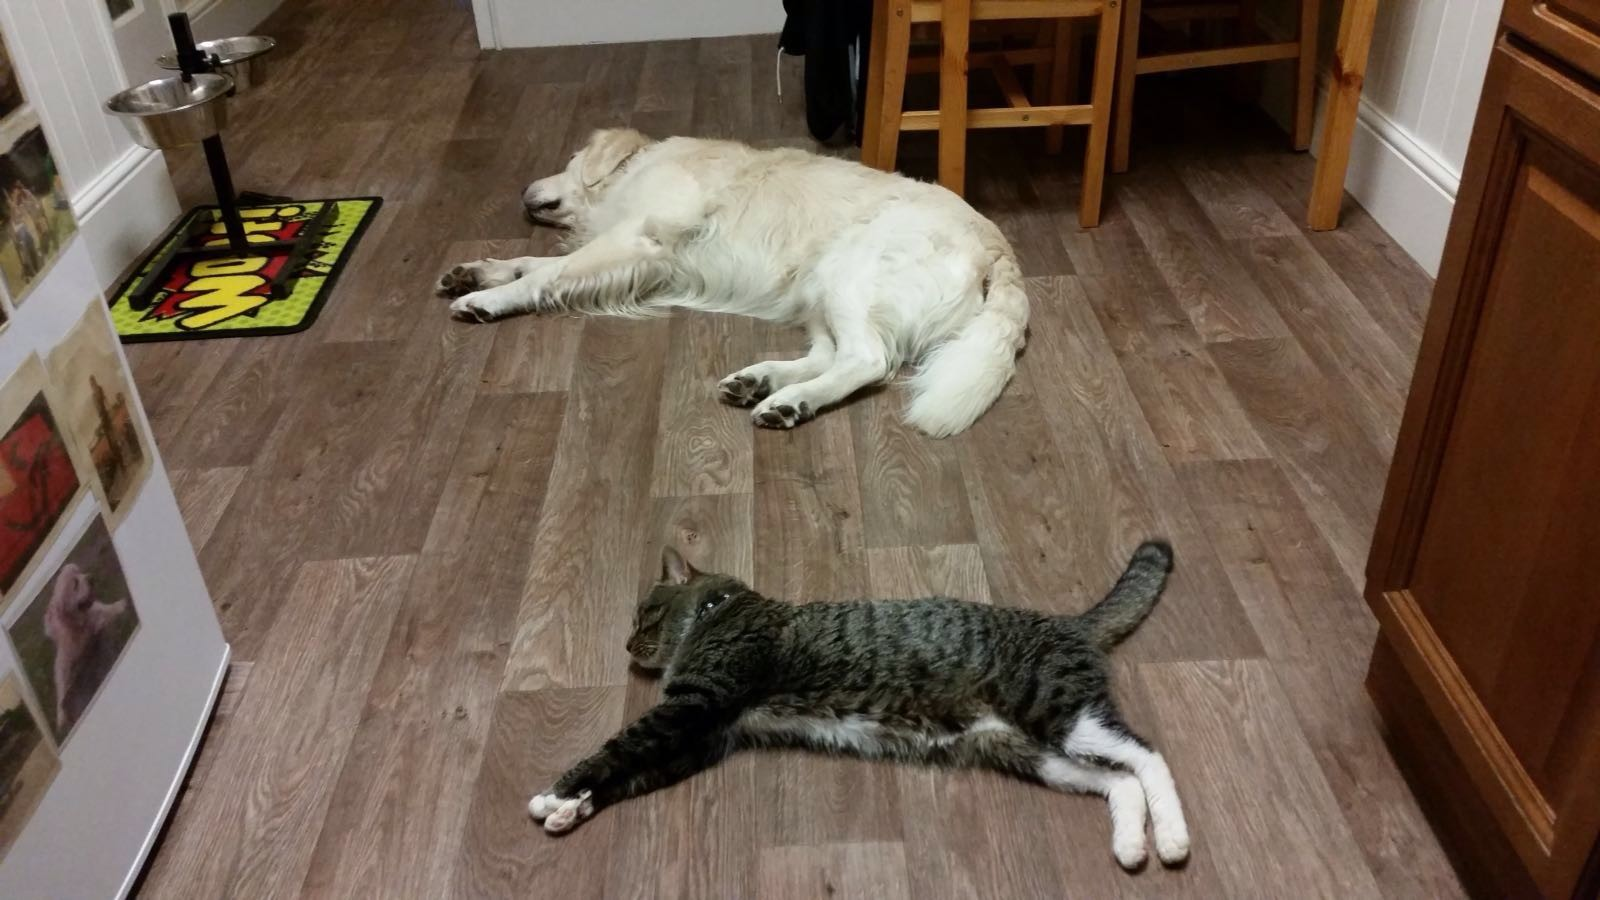 relax-dog-cat-together